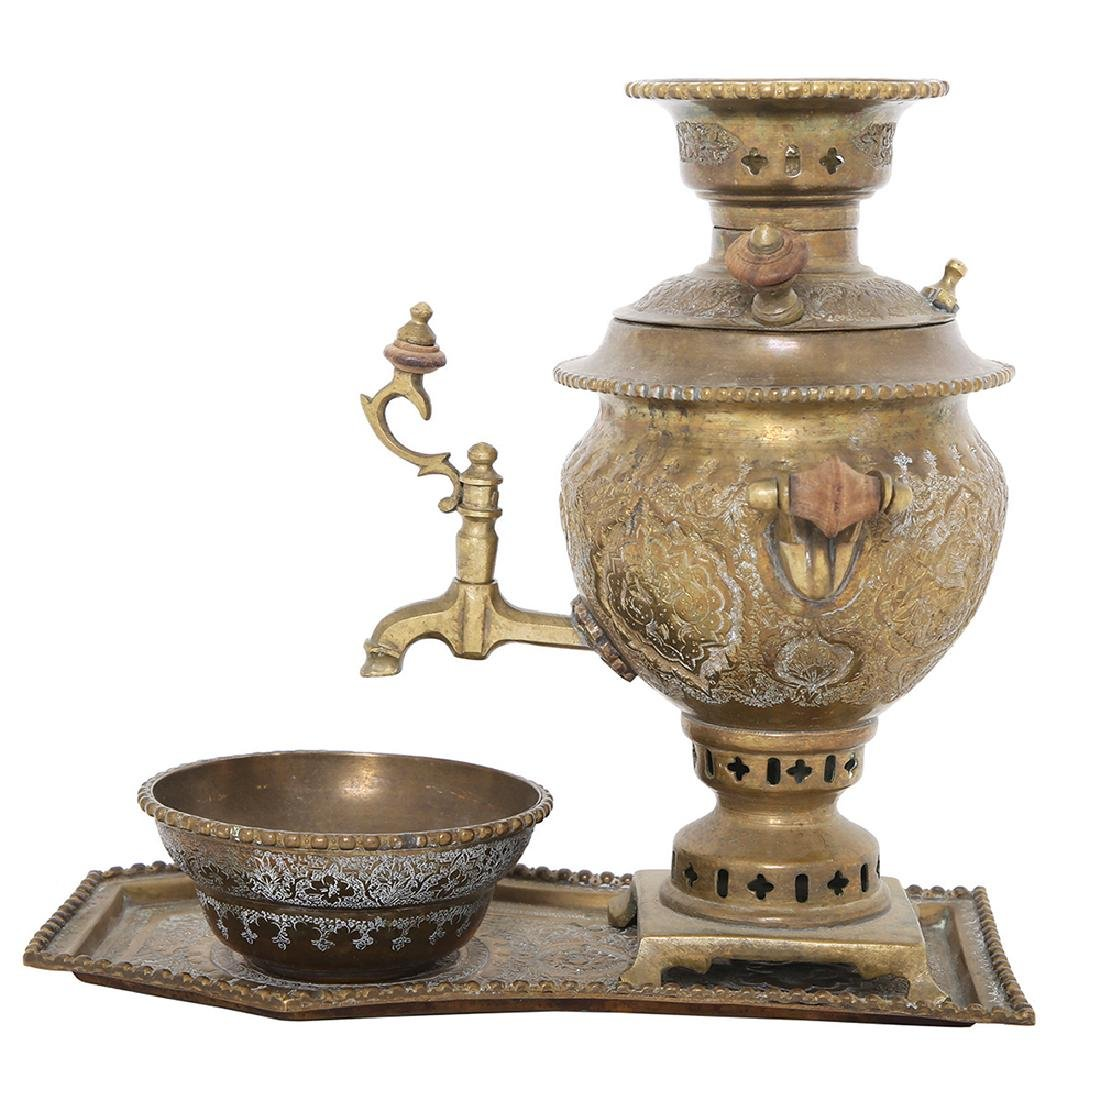 A PERSIAN BRASS PERSONAL SAMOVAR